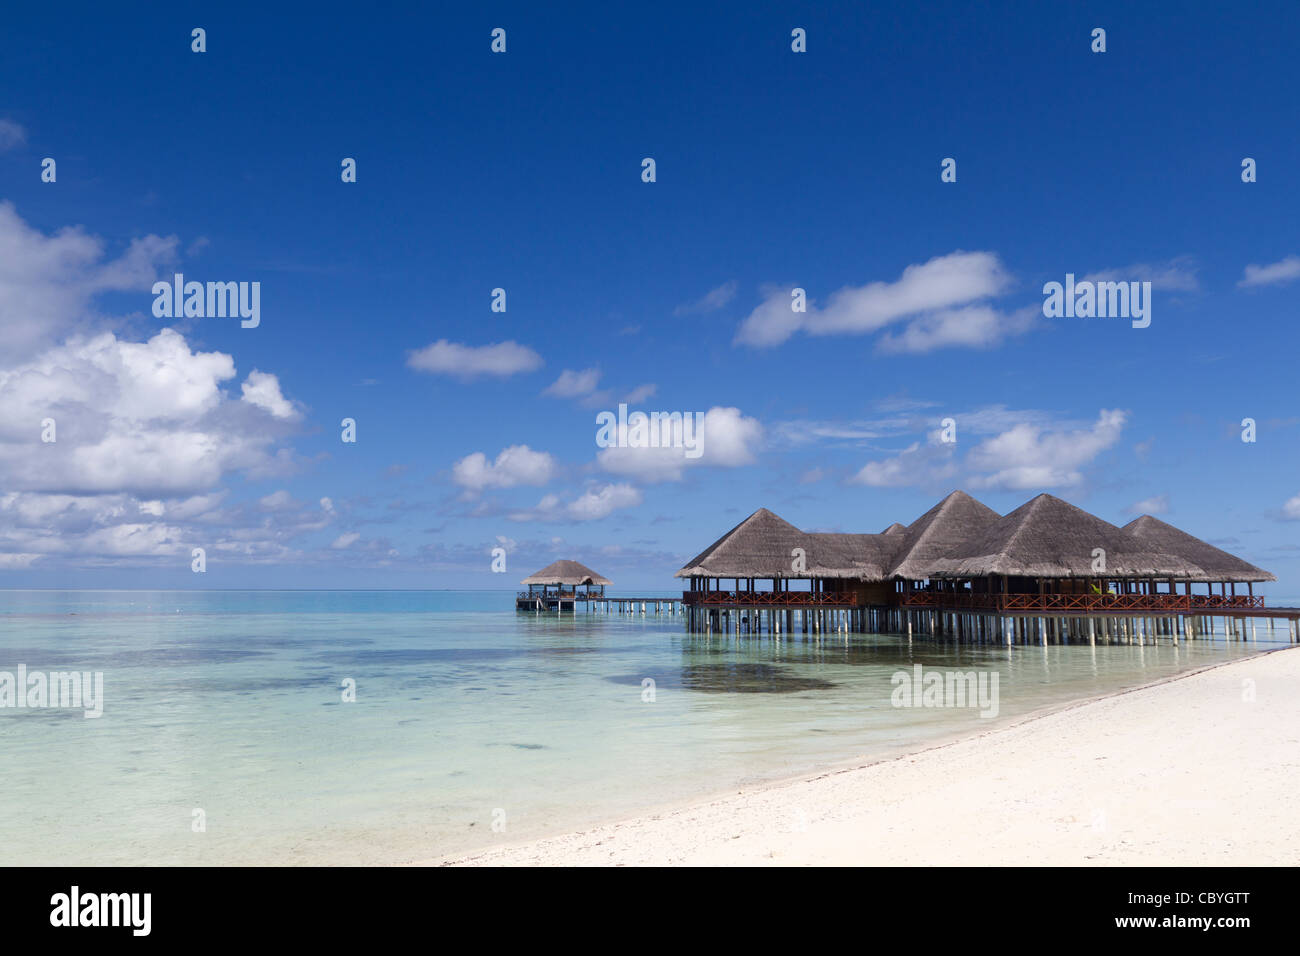 Medhufushi Island In Maldives Stock Photo 41787896 Alamy